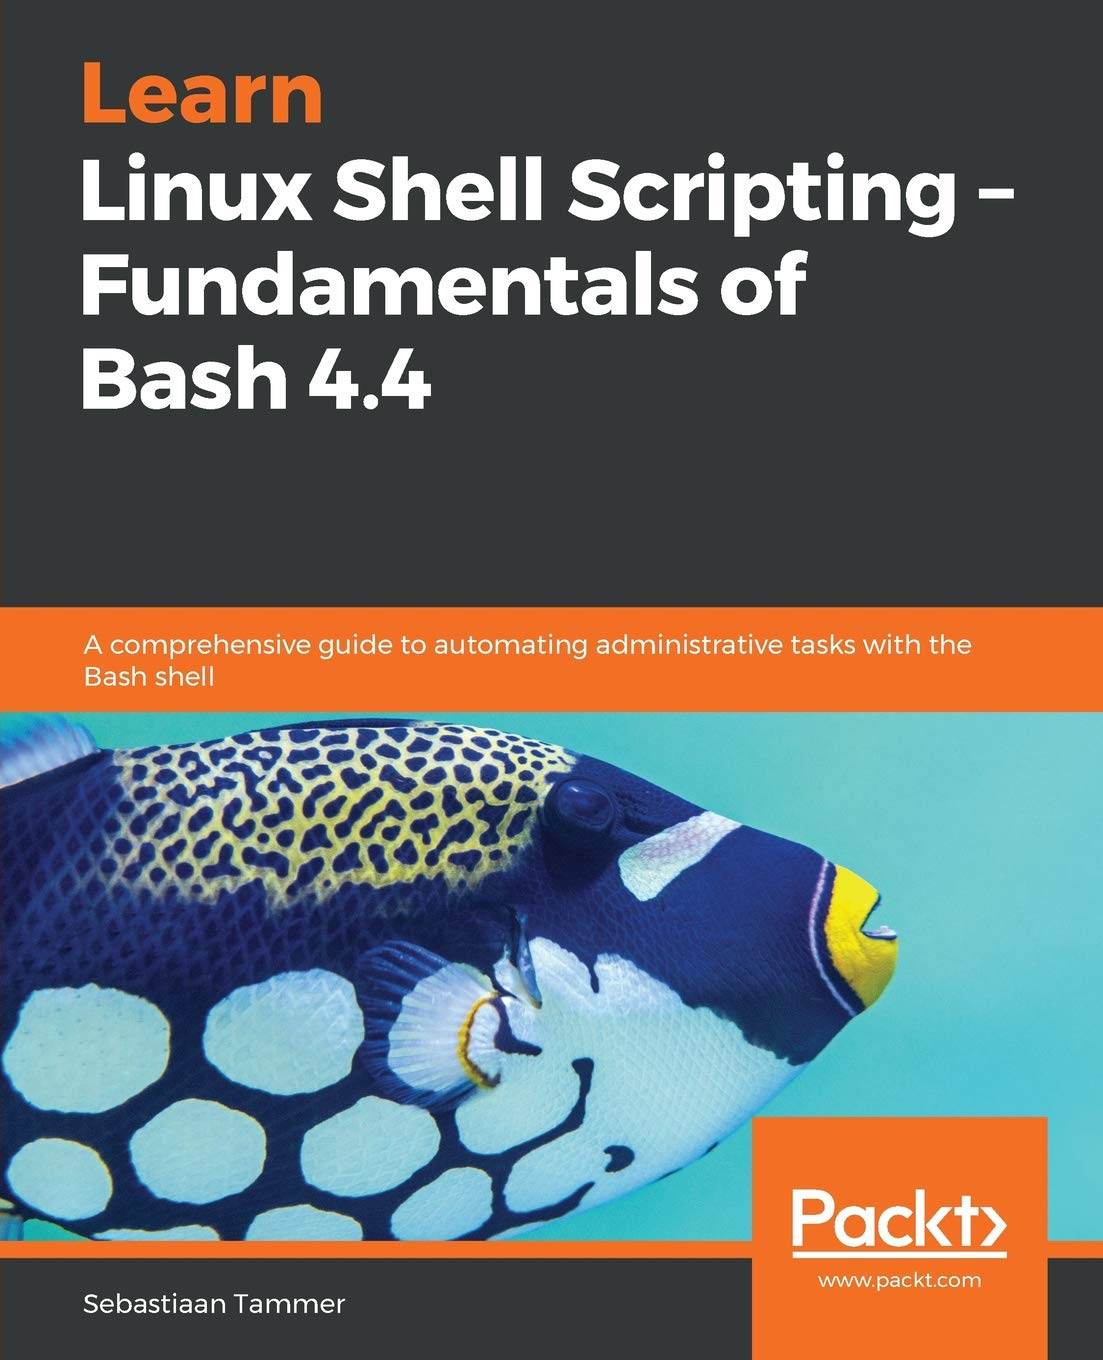 Amazon com: Learn Linux Shell Scripting – Fundamentals of